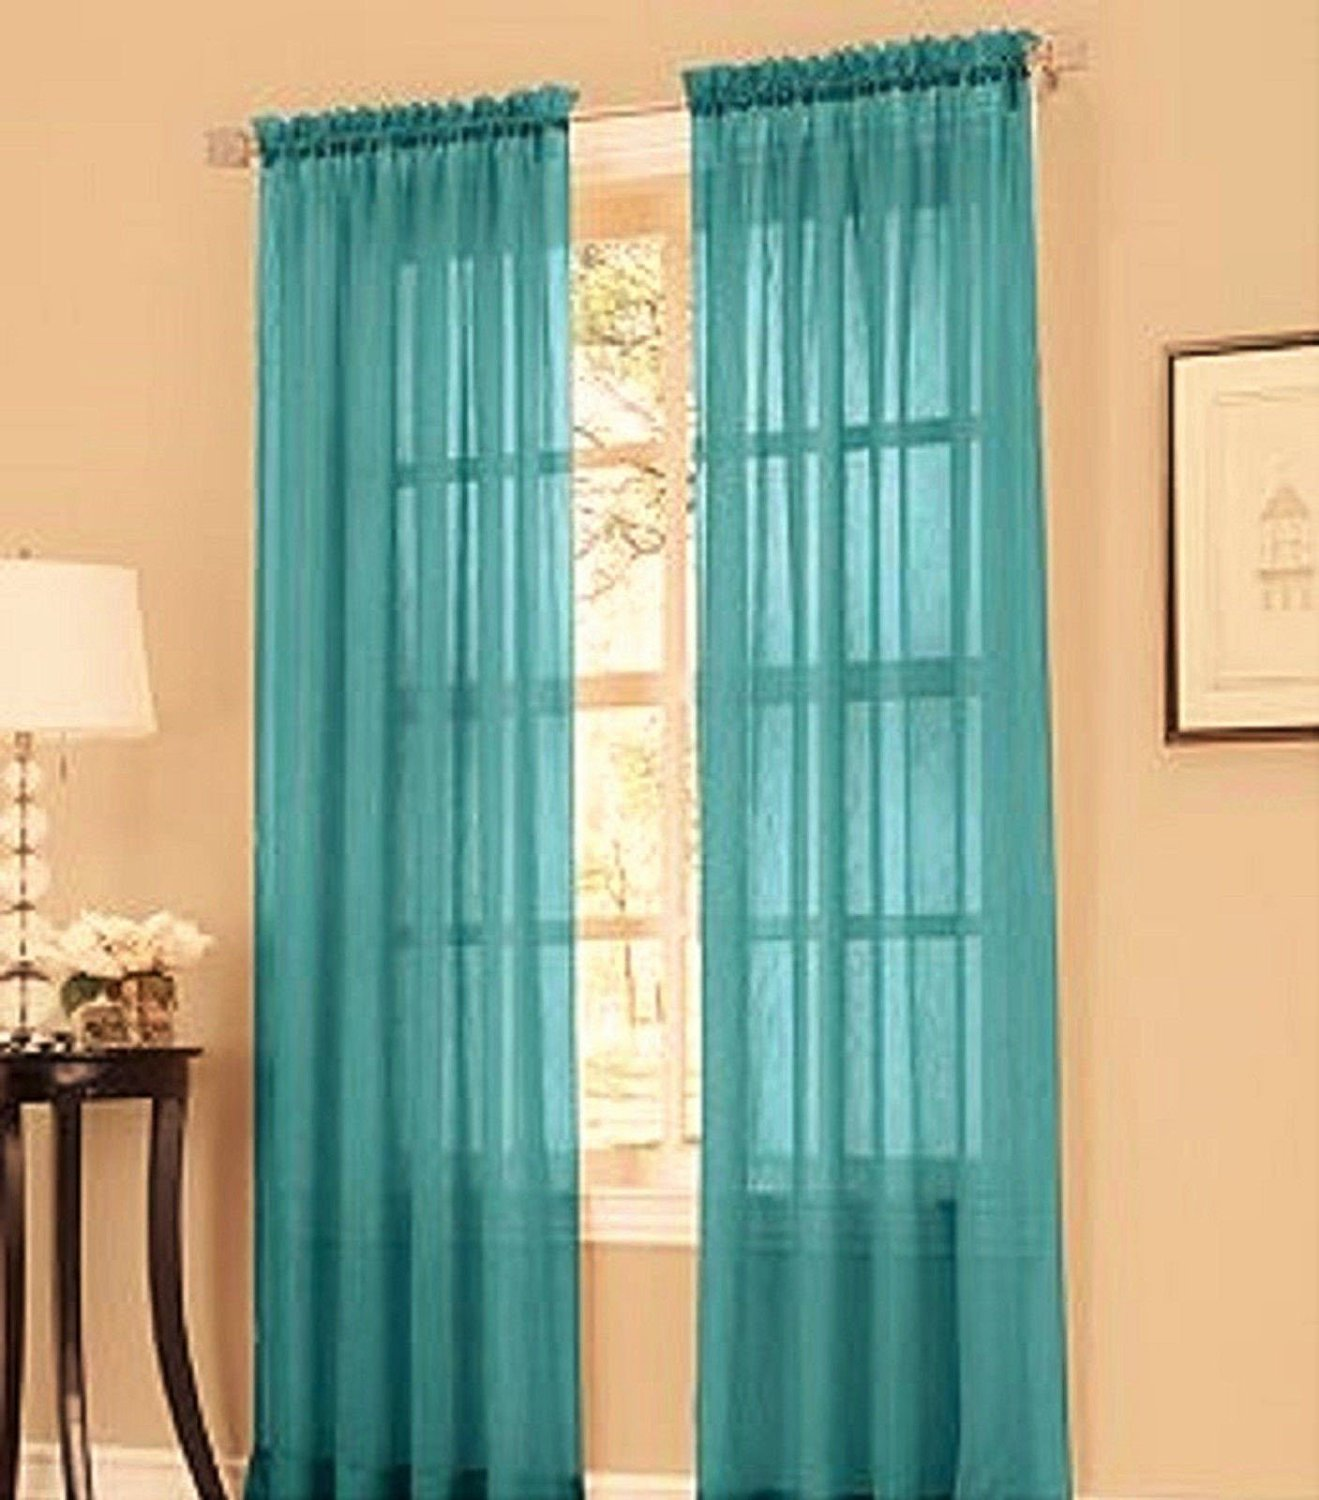 2pc Teal Blue Solid Sheer Voile Window